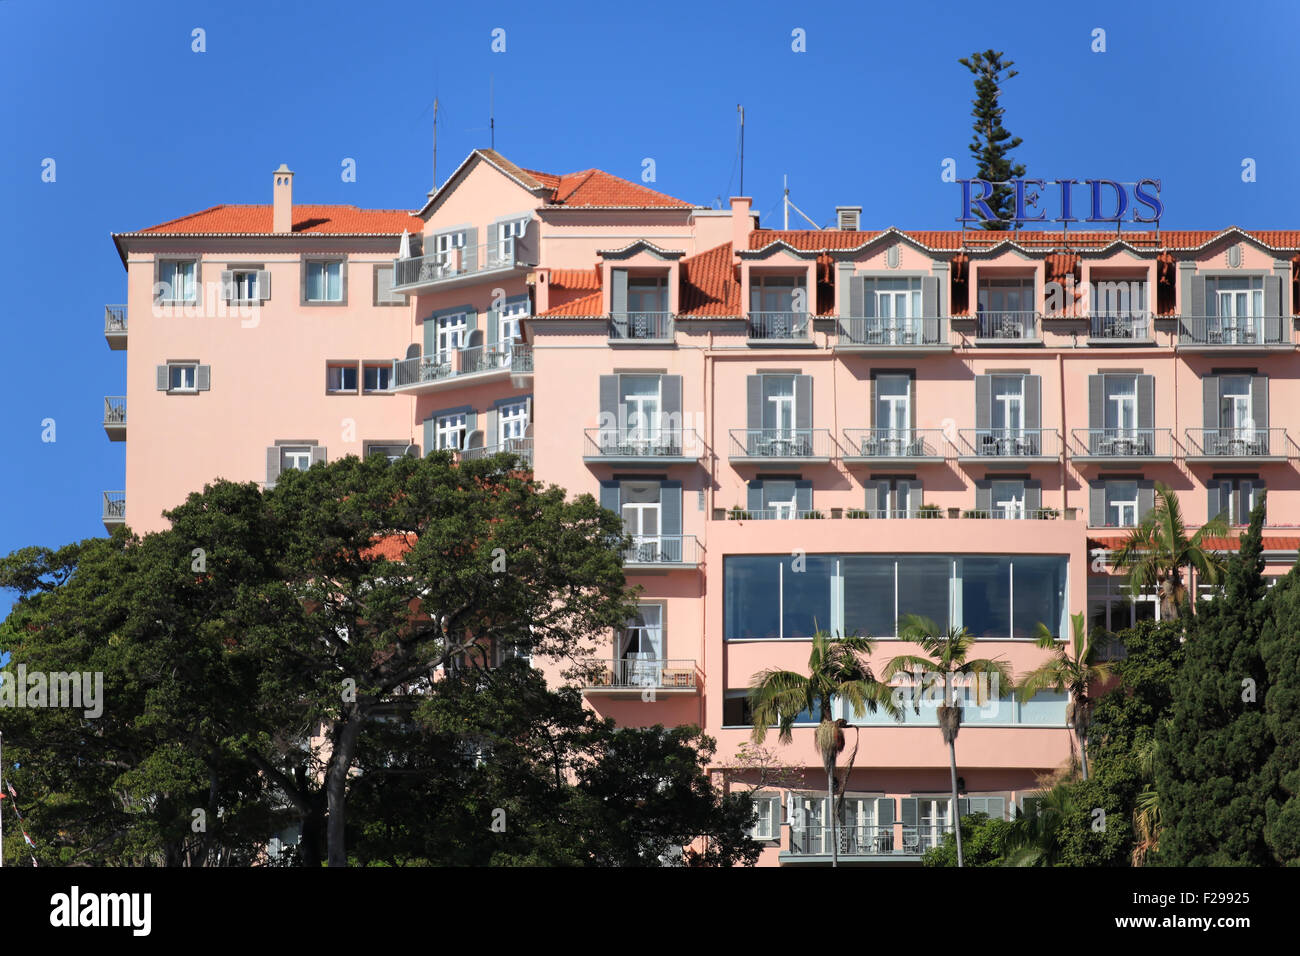 belmond reid 39 s palace hotel funchal madeira portugal often called stock photo royalty free. Black Bedroom Furniture Sets. Home Design Ideas